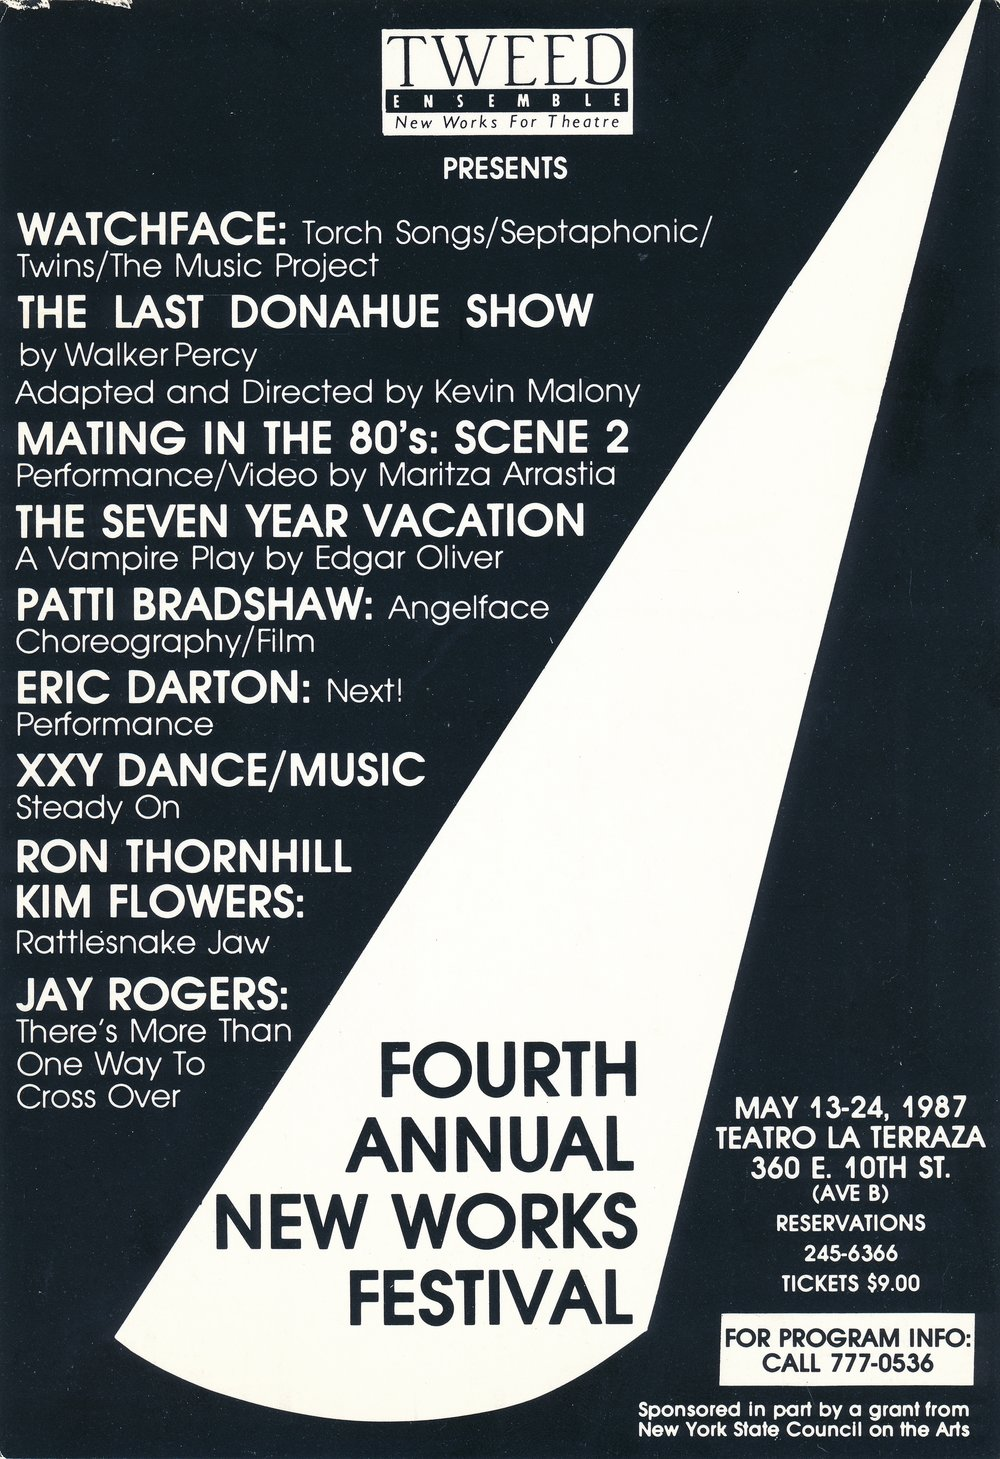 NEW WORKS FESTIVAL #4, 1987 - EL BOHIO ARTS CENTERWatchfaceKevin Malony, Walker Percy's The Last Donohue ShowMartiza Arristia, Mating in the 80'sEdgar Oliver, The Seven Year VacationPatti Bradshaw, AngelfaceEric Darton, NEXT!XXY Dance/Music, Steady On (Music by Philip Glass)Ron Thornhill/Kim Flowers, Rattlesnake JawJay Rogers, There's More Than One Way to Cross Over